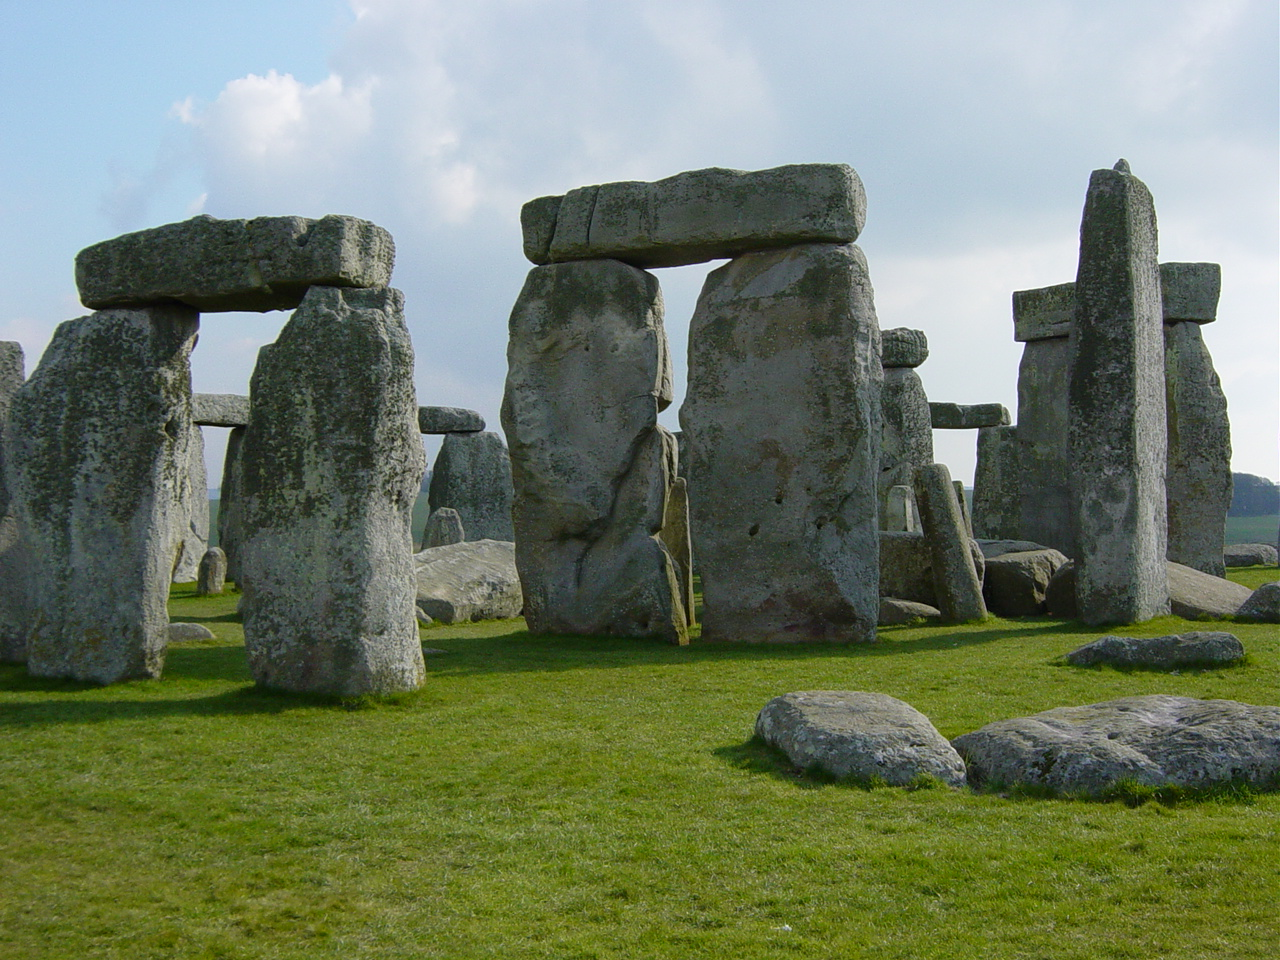 Stonehenge has long been considered a Druid site used for rituals to mark the solstices or equinoxes of each season.